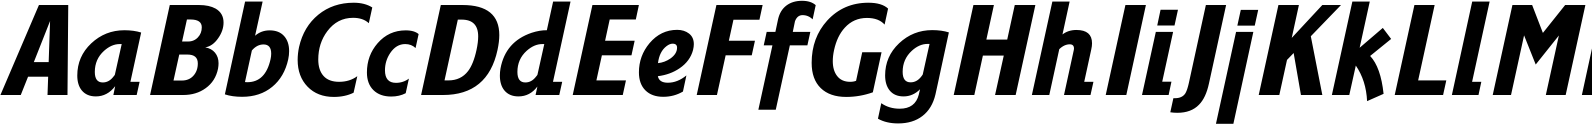 Fairway Medium Italic Font